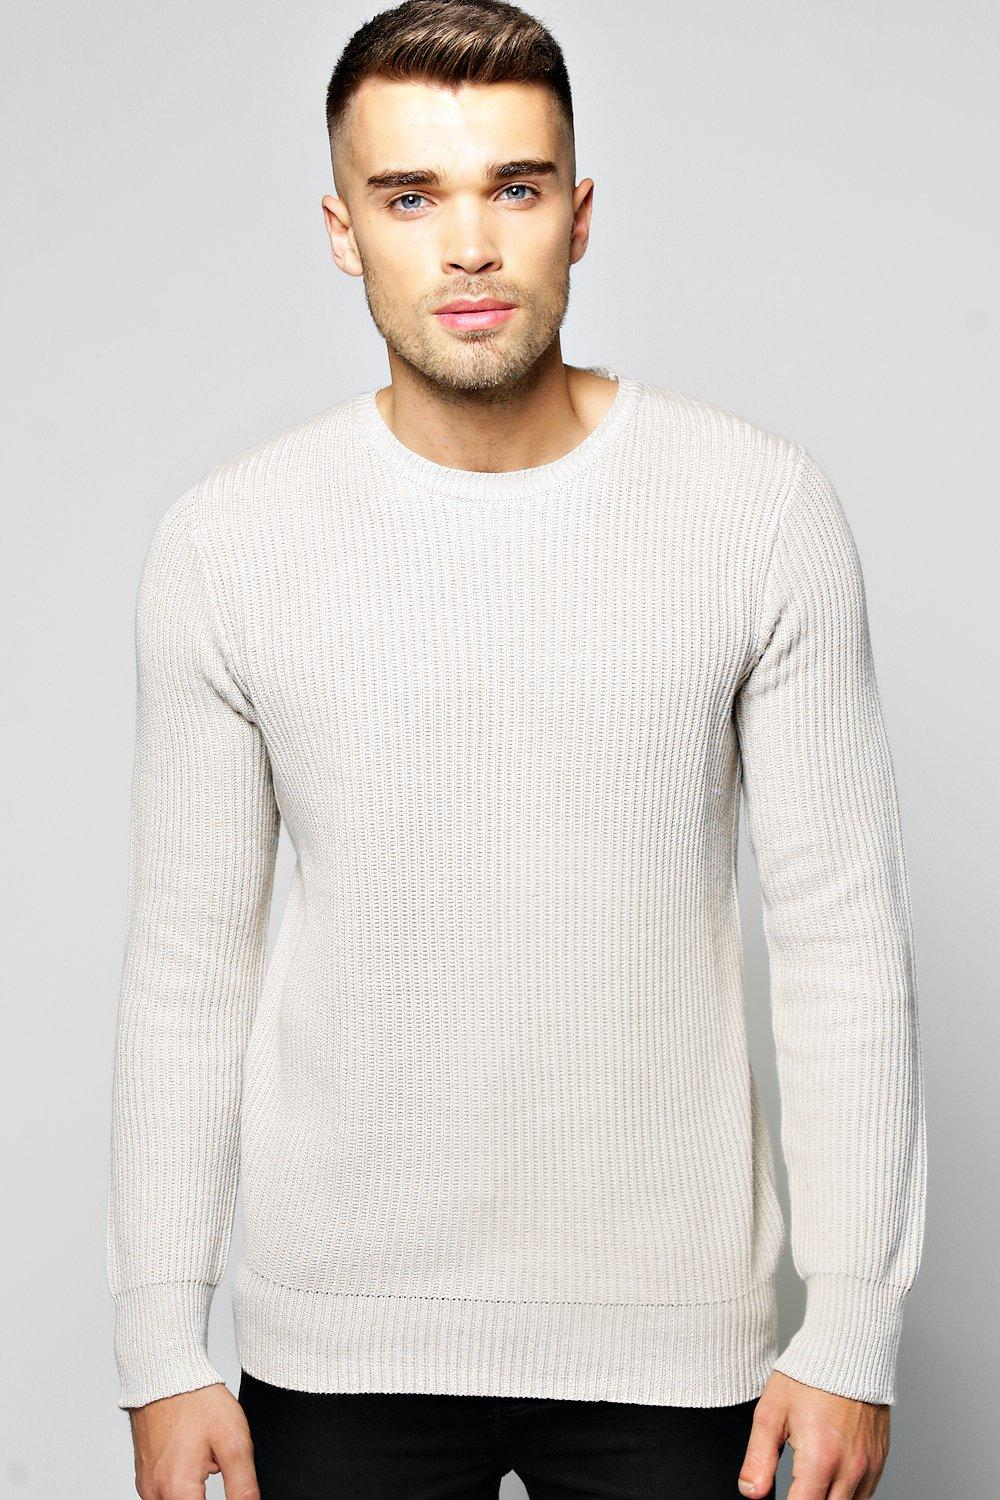 Fishermand Rib Crew Neck Jumper